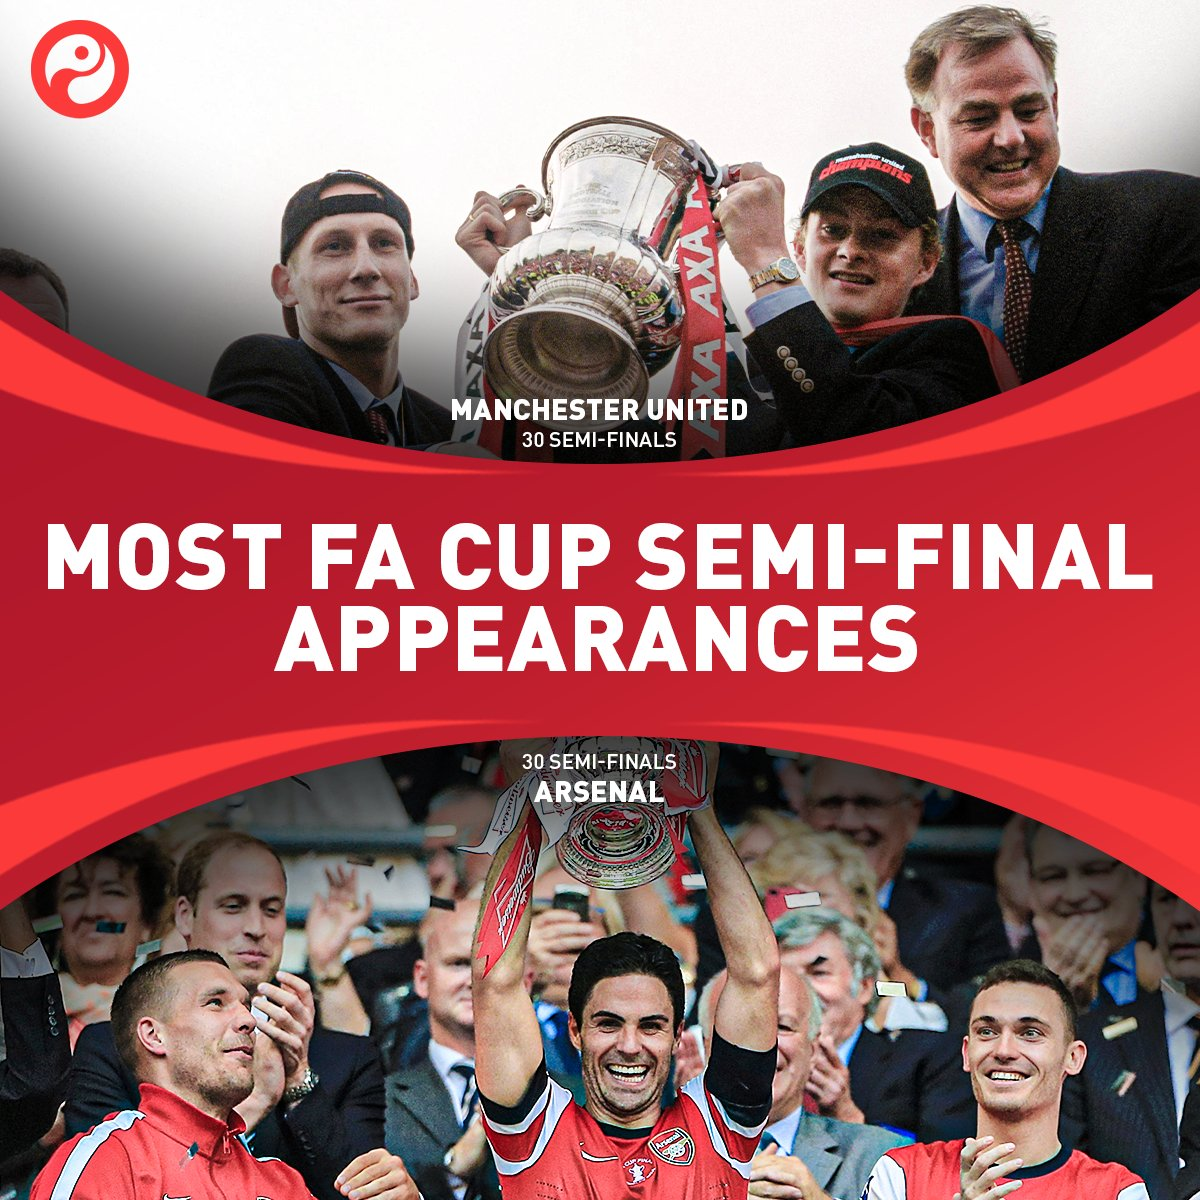 Most FA Cup semi-final appearances in the history of the competition: 🔴 Arsenal (30) 🔴 Man Utd (30) Both current managers lifted the trophy twice for their respective clubs as a player. 🏆🏆